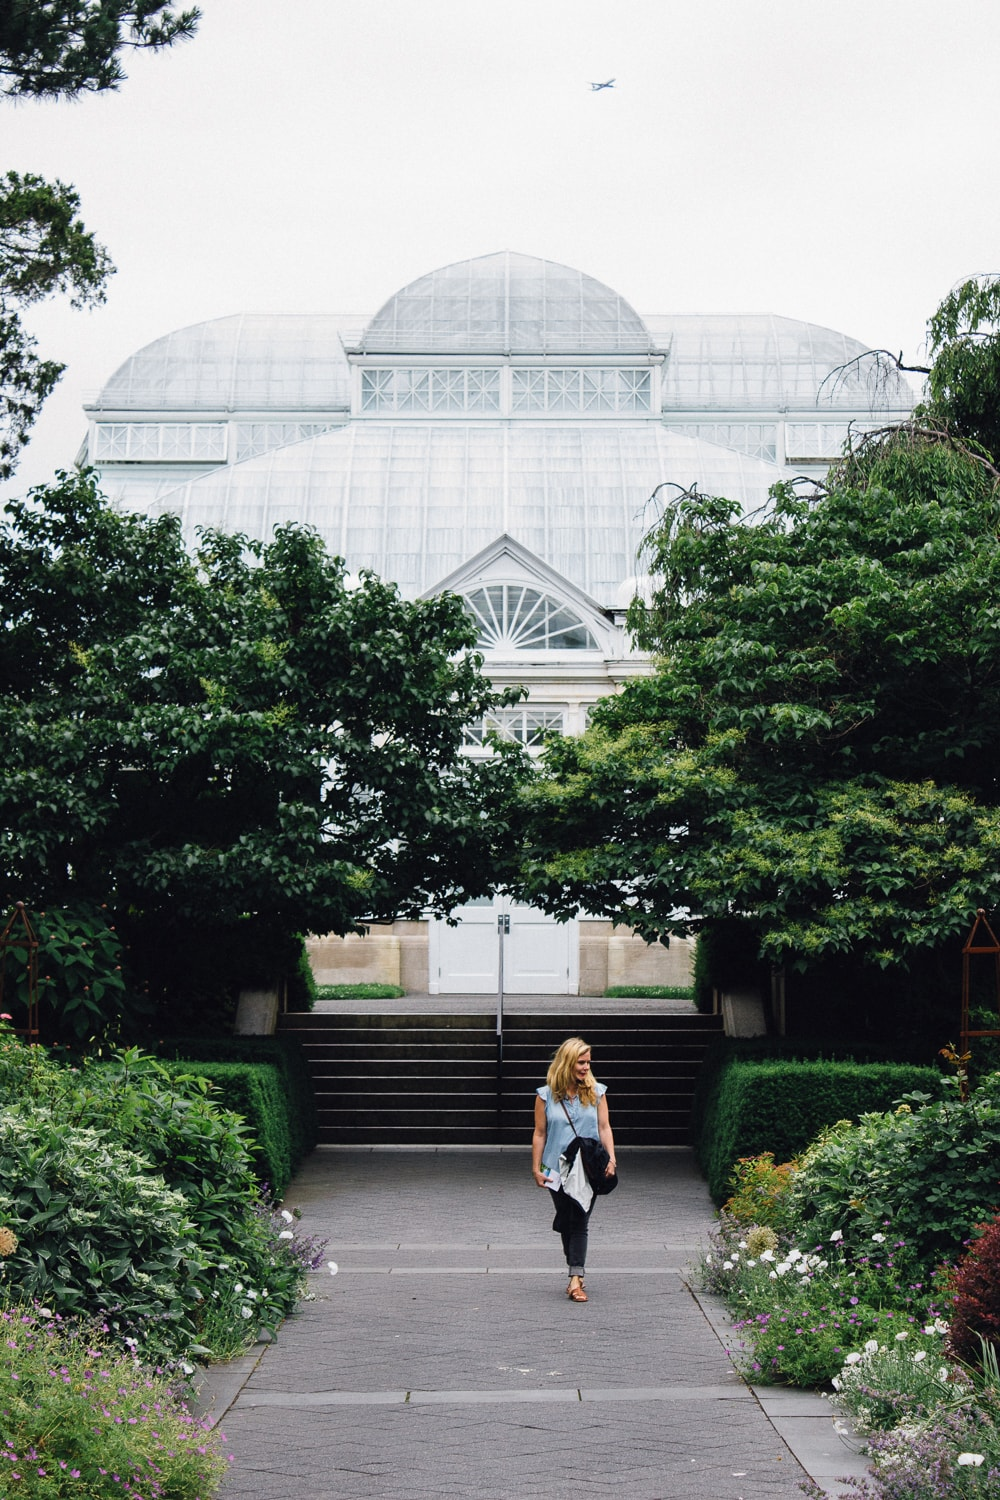 woman walking among gardens with greenhouse behind her